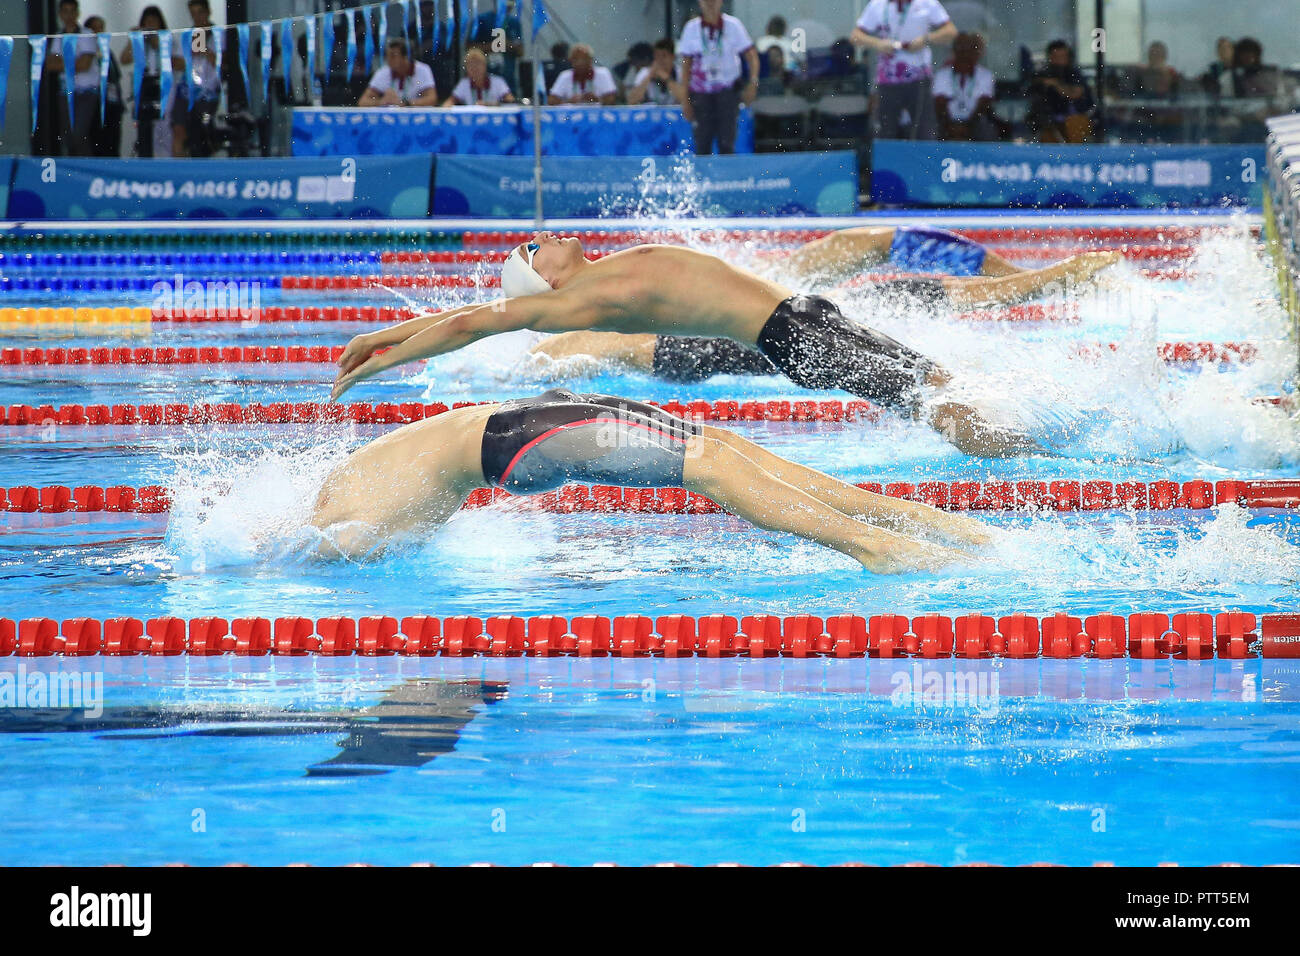 Swimmers compete in a Swimming Men's Team Relay race at the Natatorium during the fourth day of competitions of the Youth Olympic Games, in Buenos Aires, Argentina, 10 October 2018. EFE/Juan Ignacio Roncoroni - Stock Image